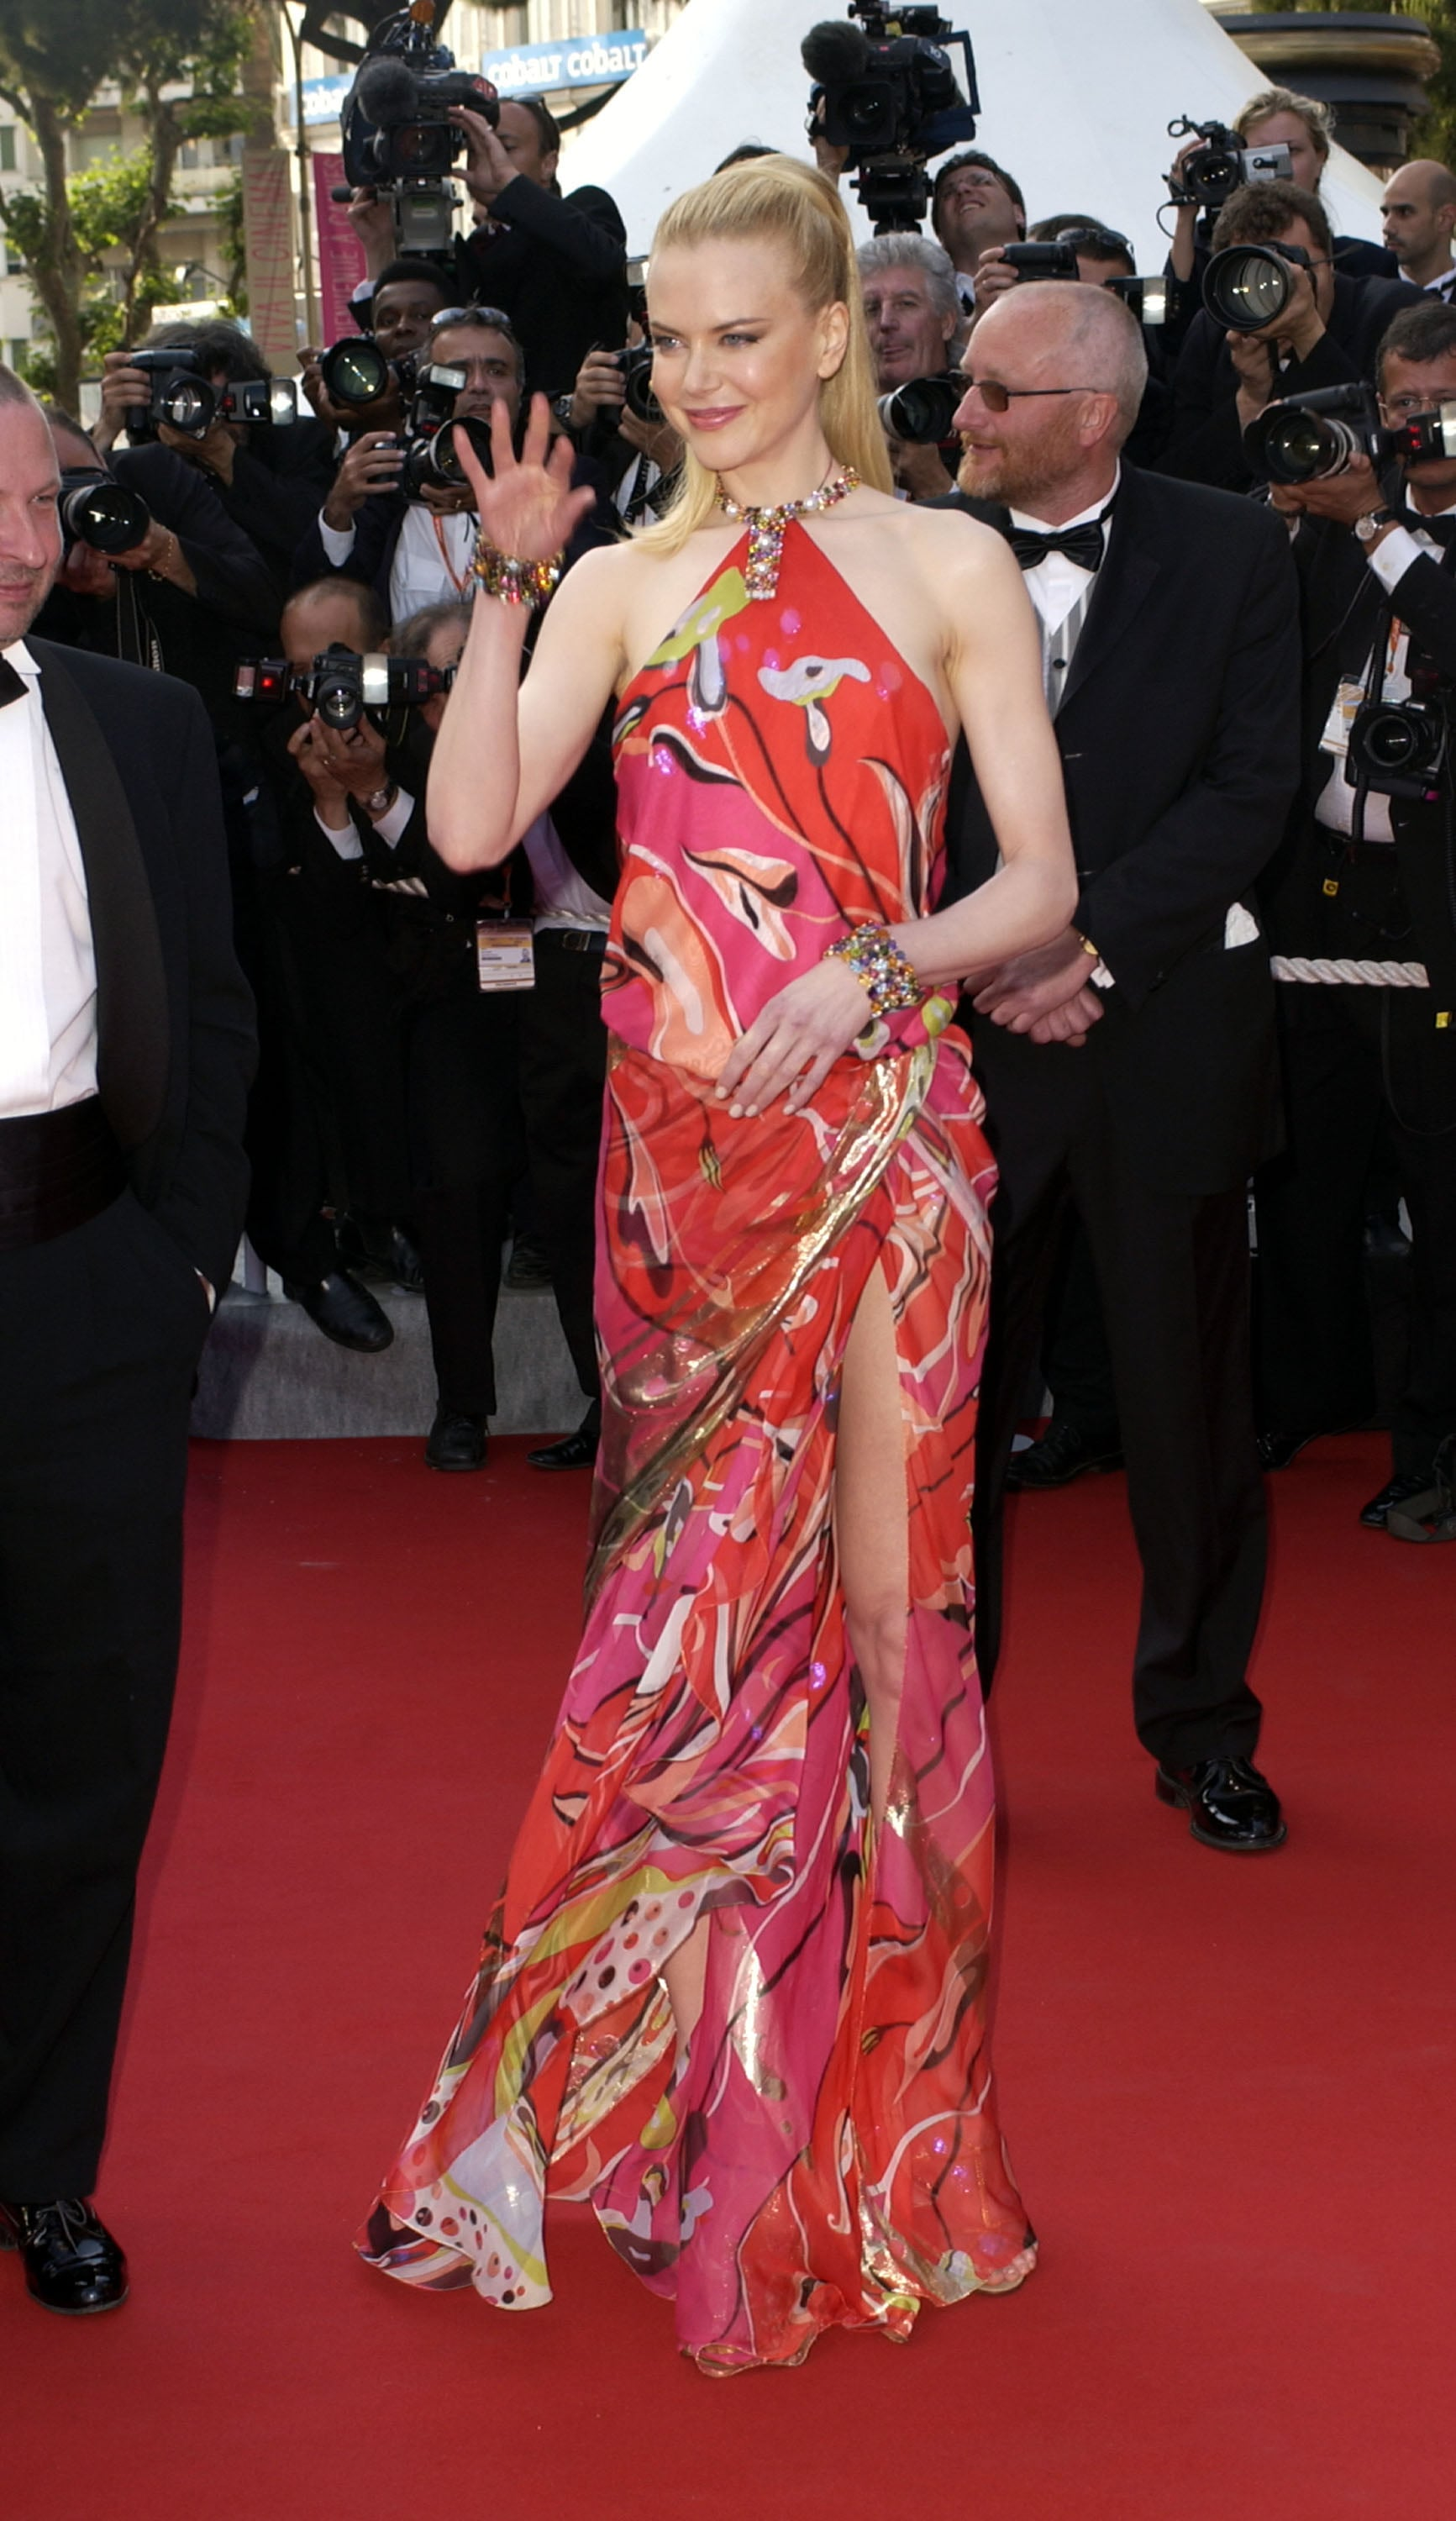 Nicole Kidman wore a Pucci dress to the 2003 Cannes premiere of Dogville.